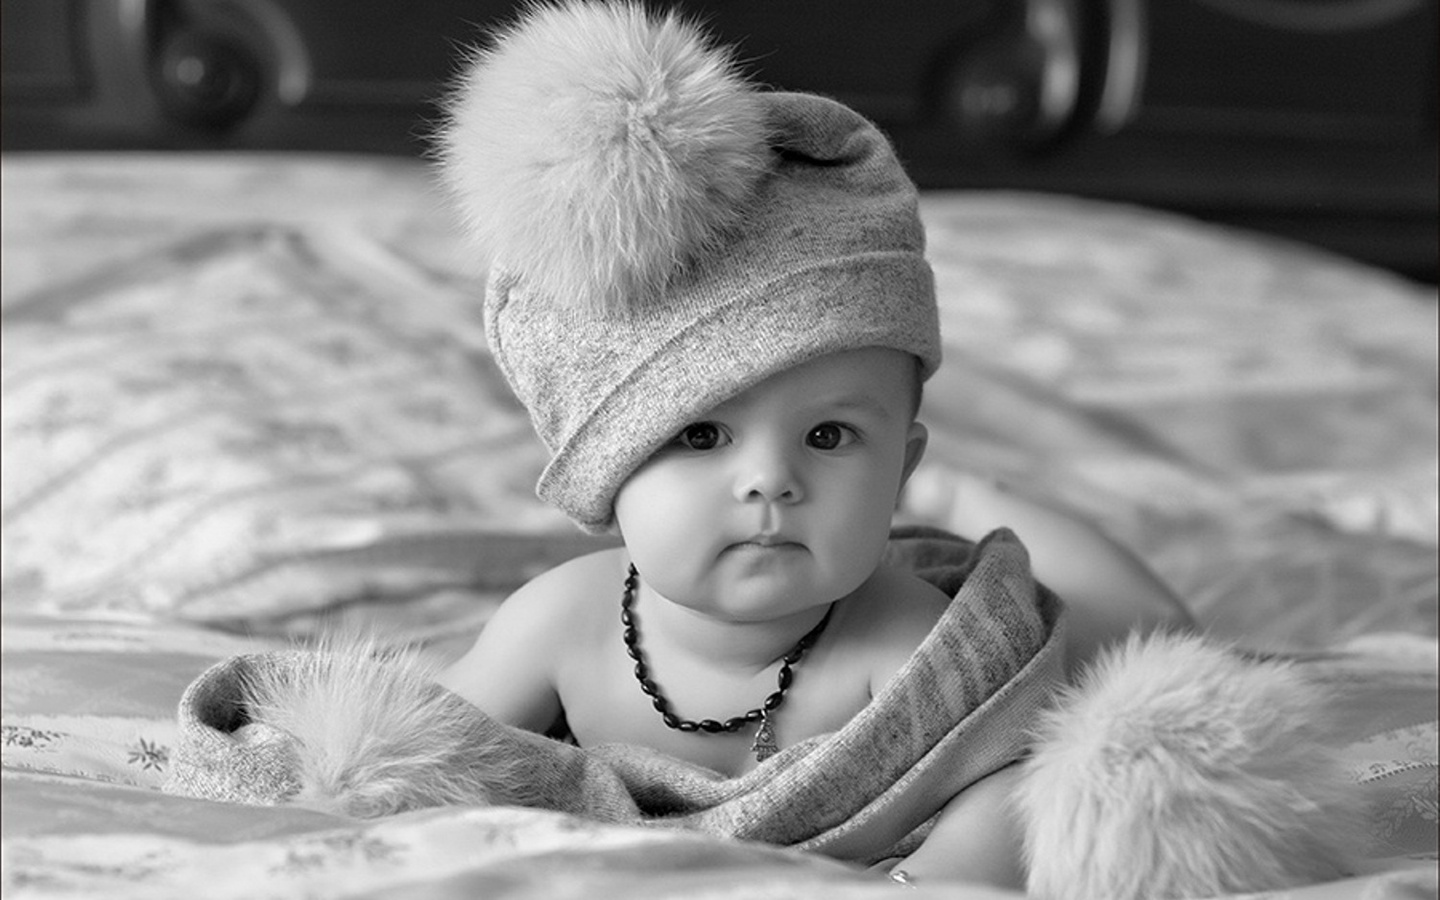 Black And White Baby With Hat (click to view) 6b0a8ffc7f2